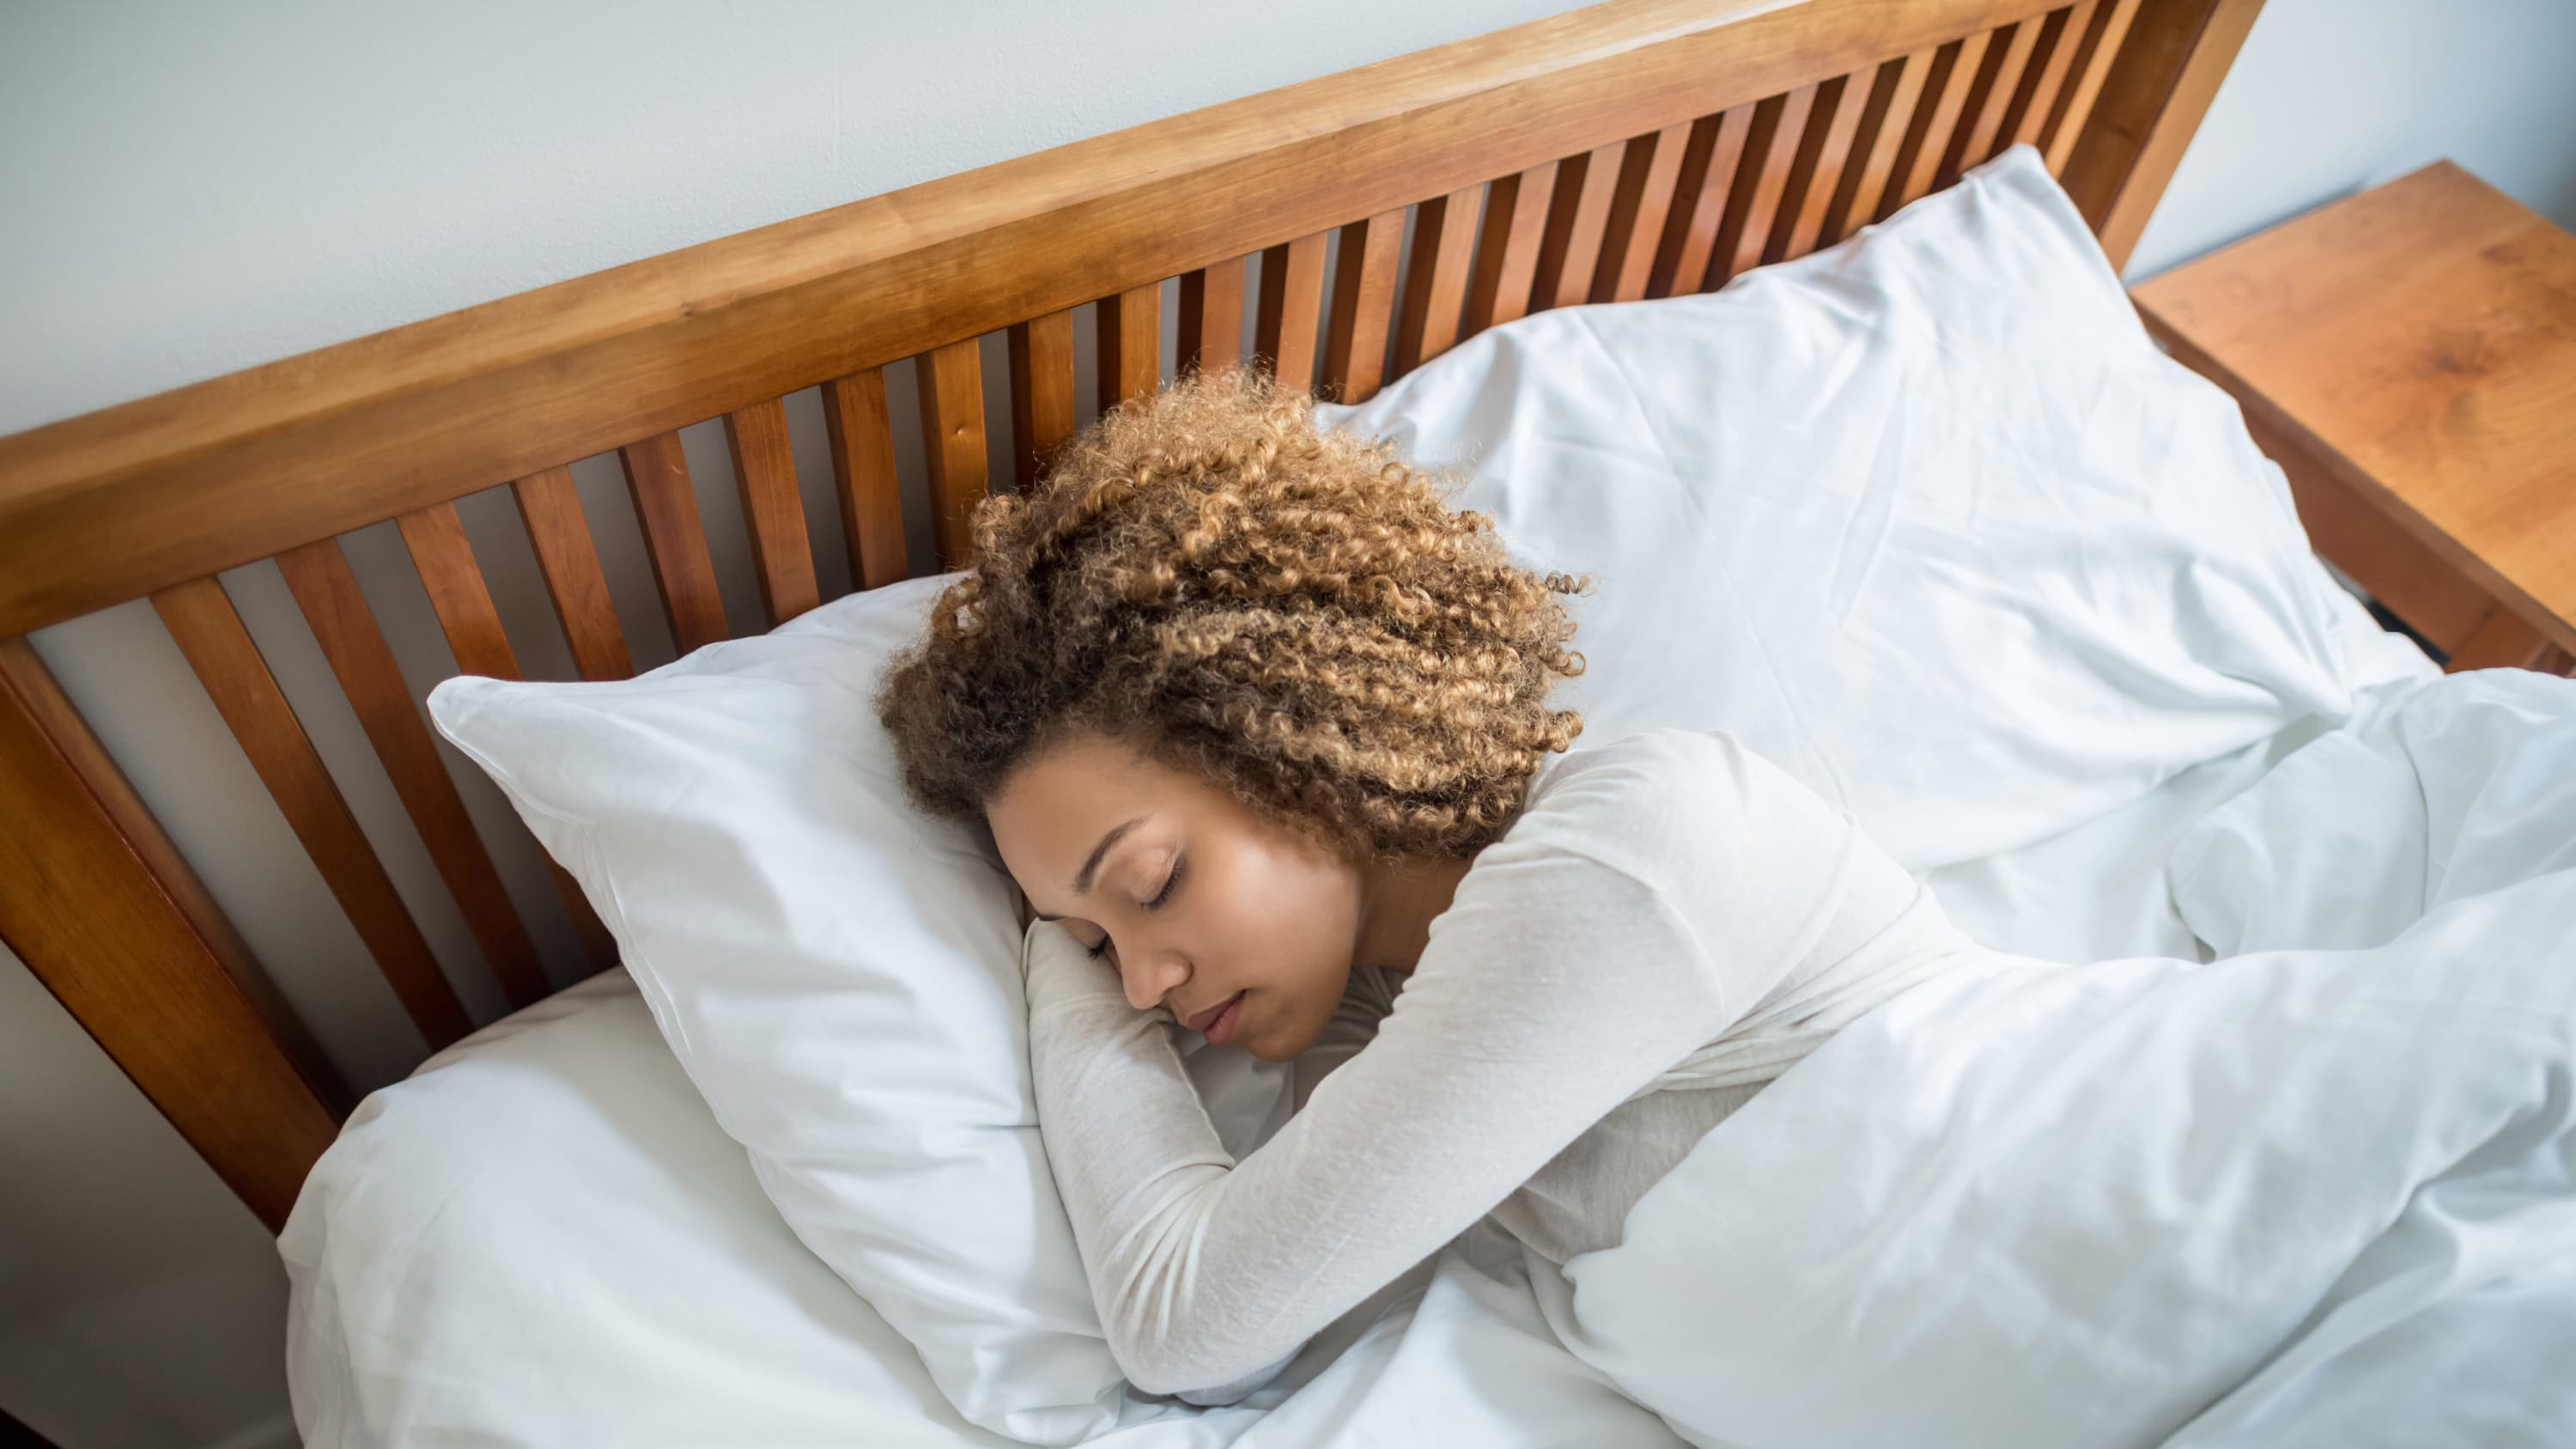 An African American woman enjoys a restful sleep in bed after being diagnosed in a sleep study and then treated.